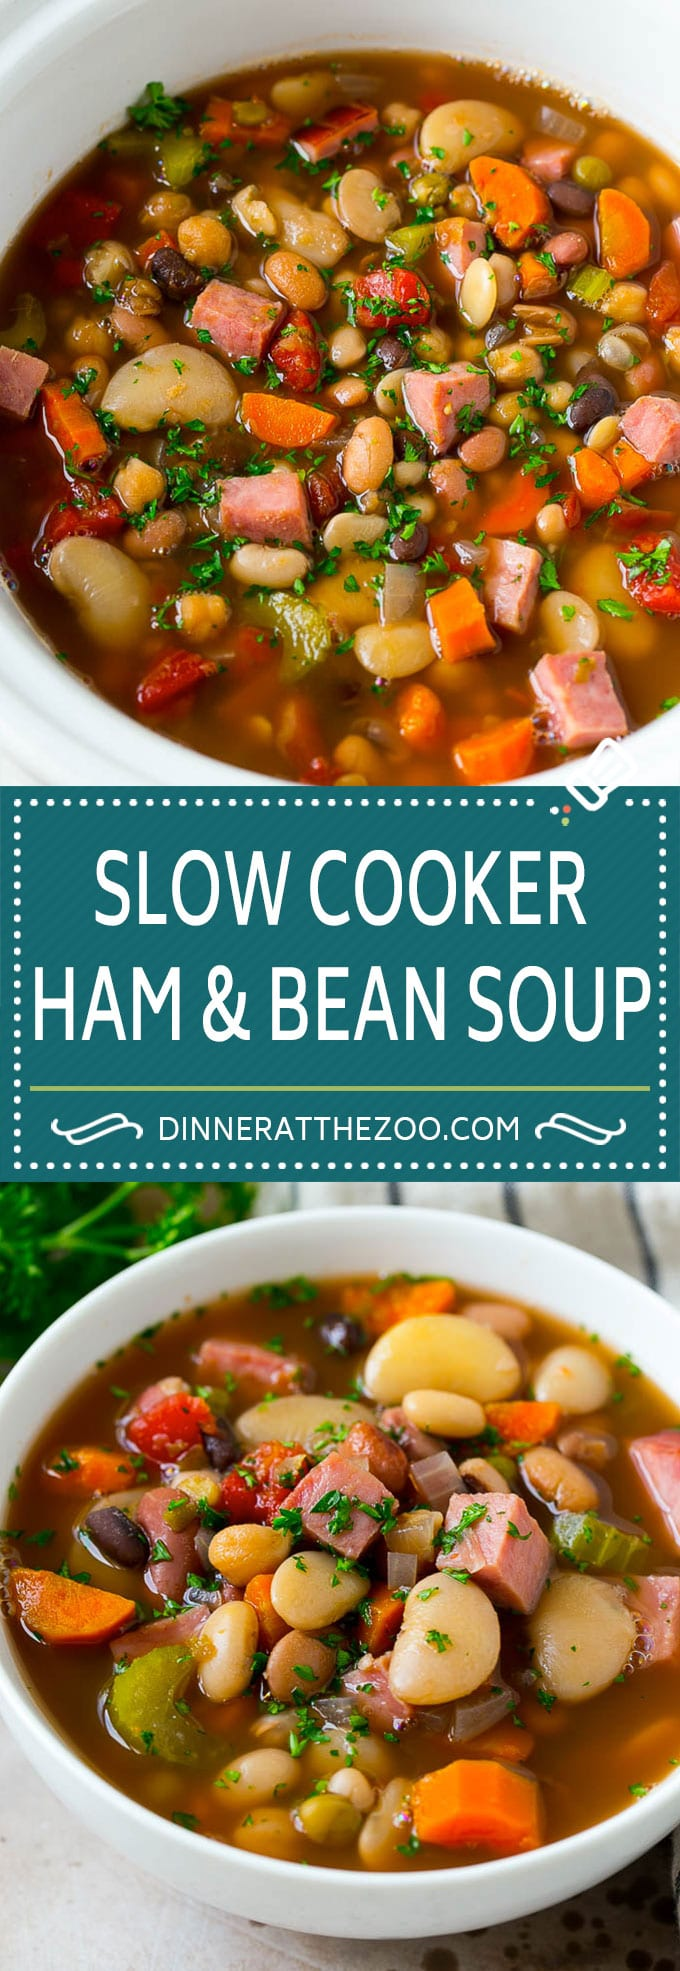 Ham and Bean Soup Recipe | Slow Cooker Ham and Bean Soup | Crockpot Ham and Bean Soup | Leftover Ham Recipe #ham #beans #soup #slowcooker #crockpot #dinner #dinneratthezoo